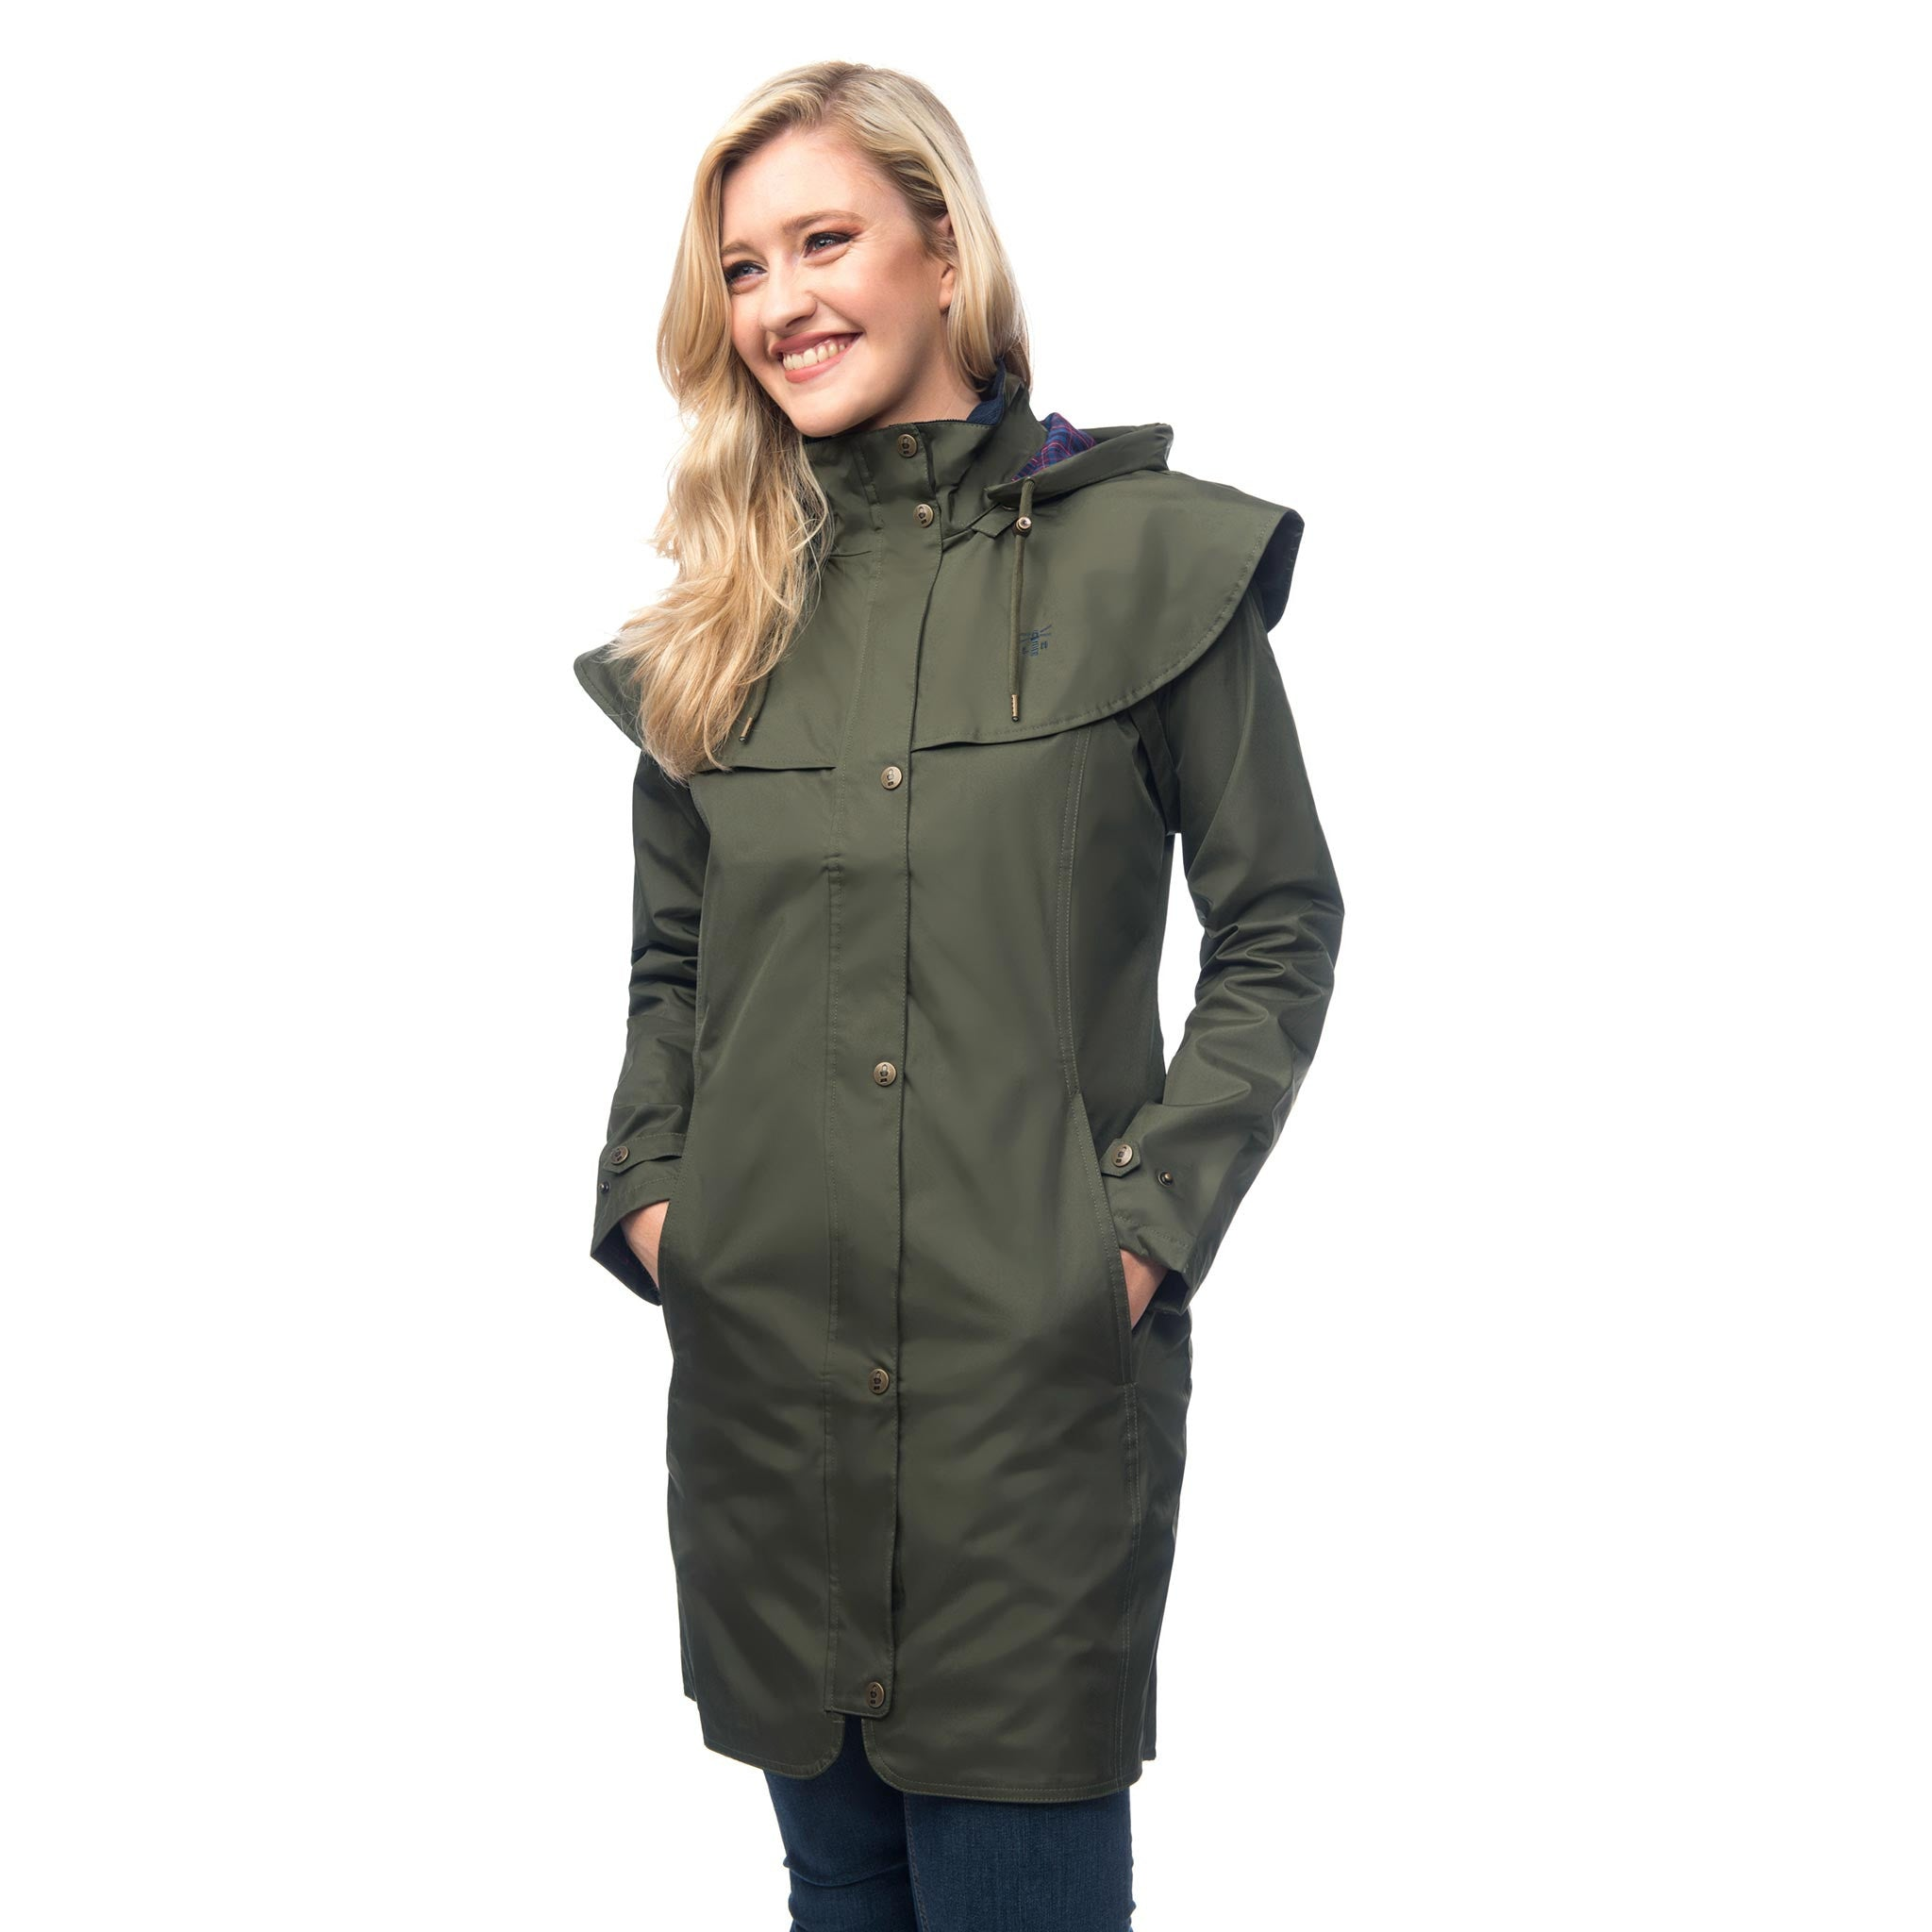 Lighthouse Womens Outrider 3/4 Length Waterproof Raincoat in Green. Zipped & Buttoned.